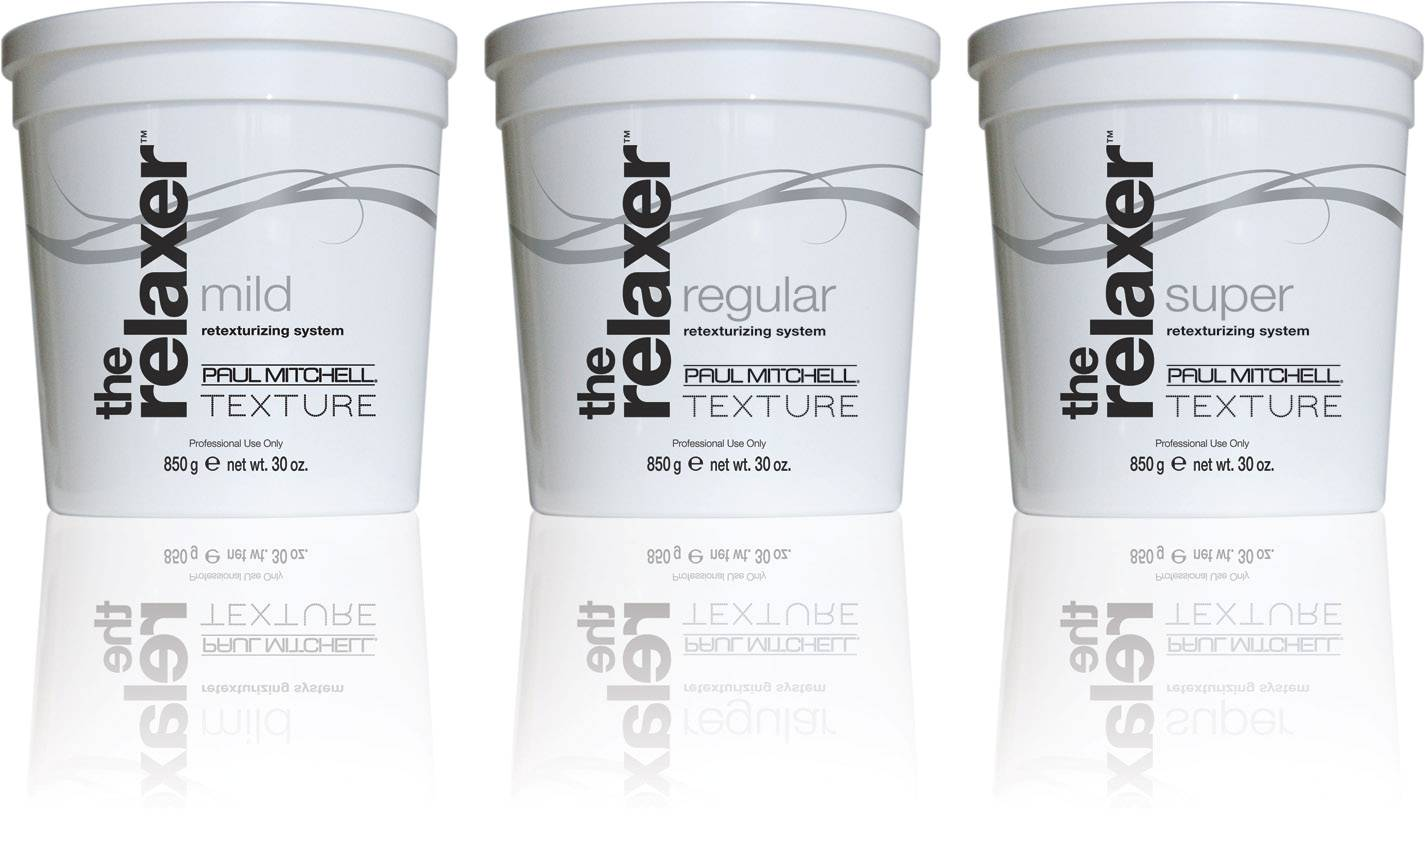 texture paul mitchellreg the relaxer offers an innovative advanced sodium hydroxide system in three strengths that effectively relaxes natural waves or curls in all